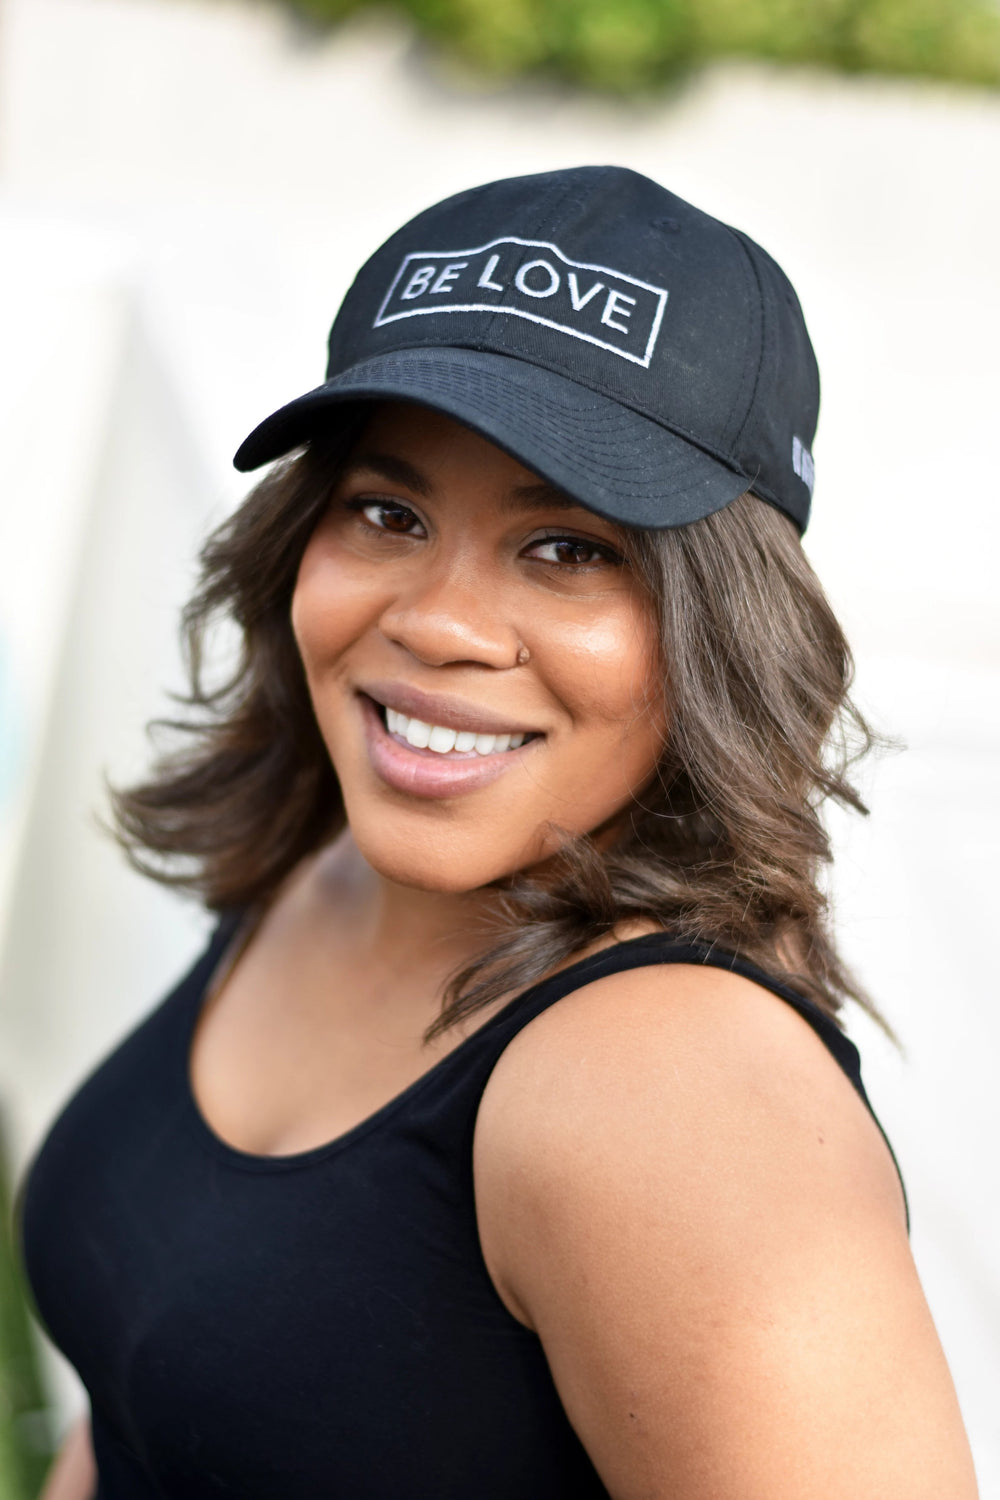 BE LOVE Classic Hat